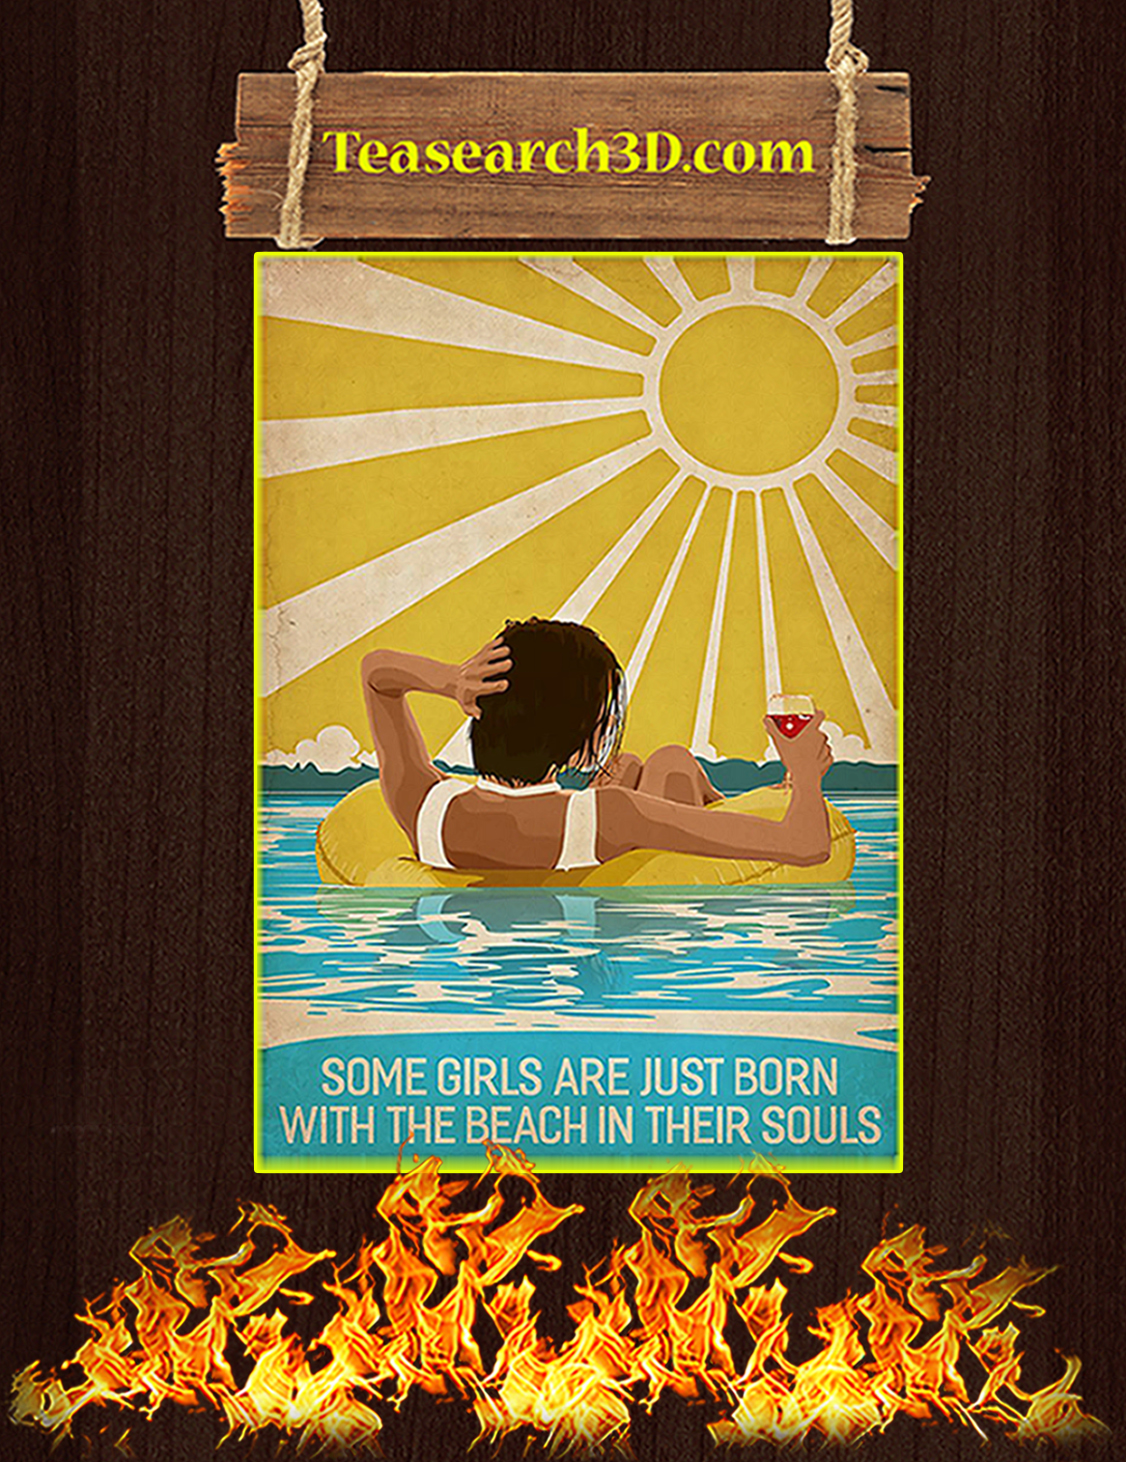 Some girls are just born with the beach in their souls poster A3